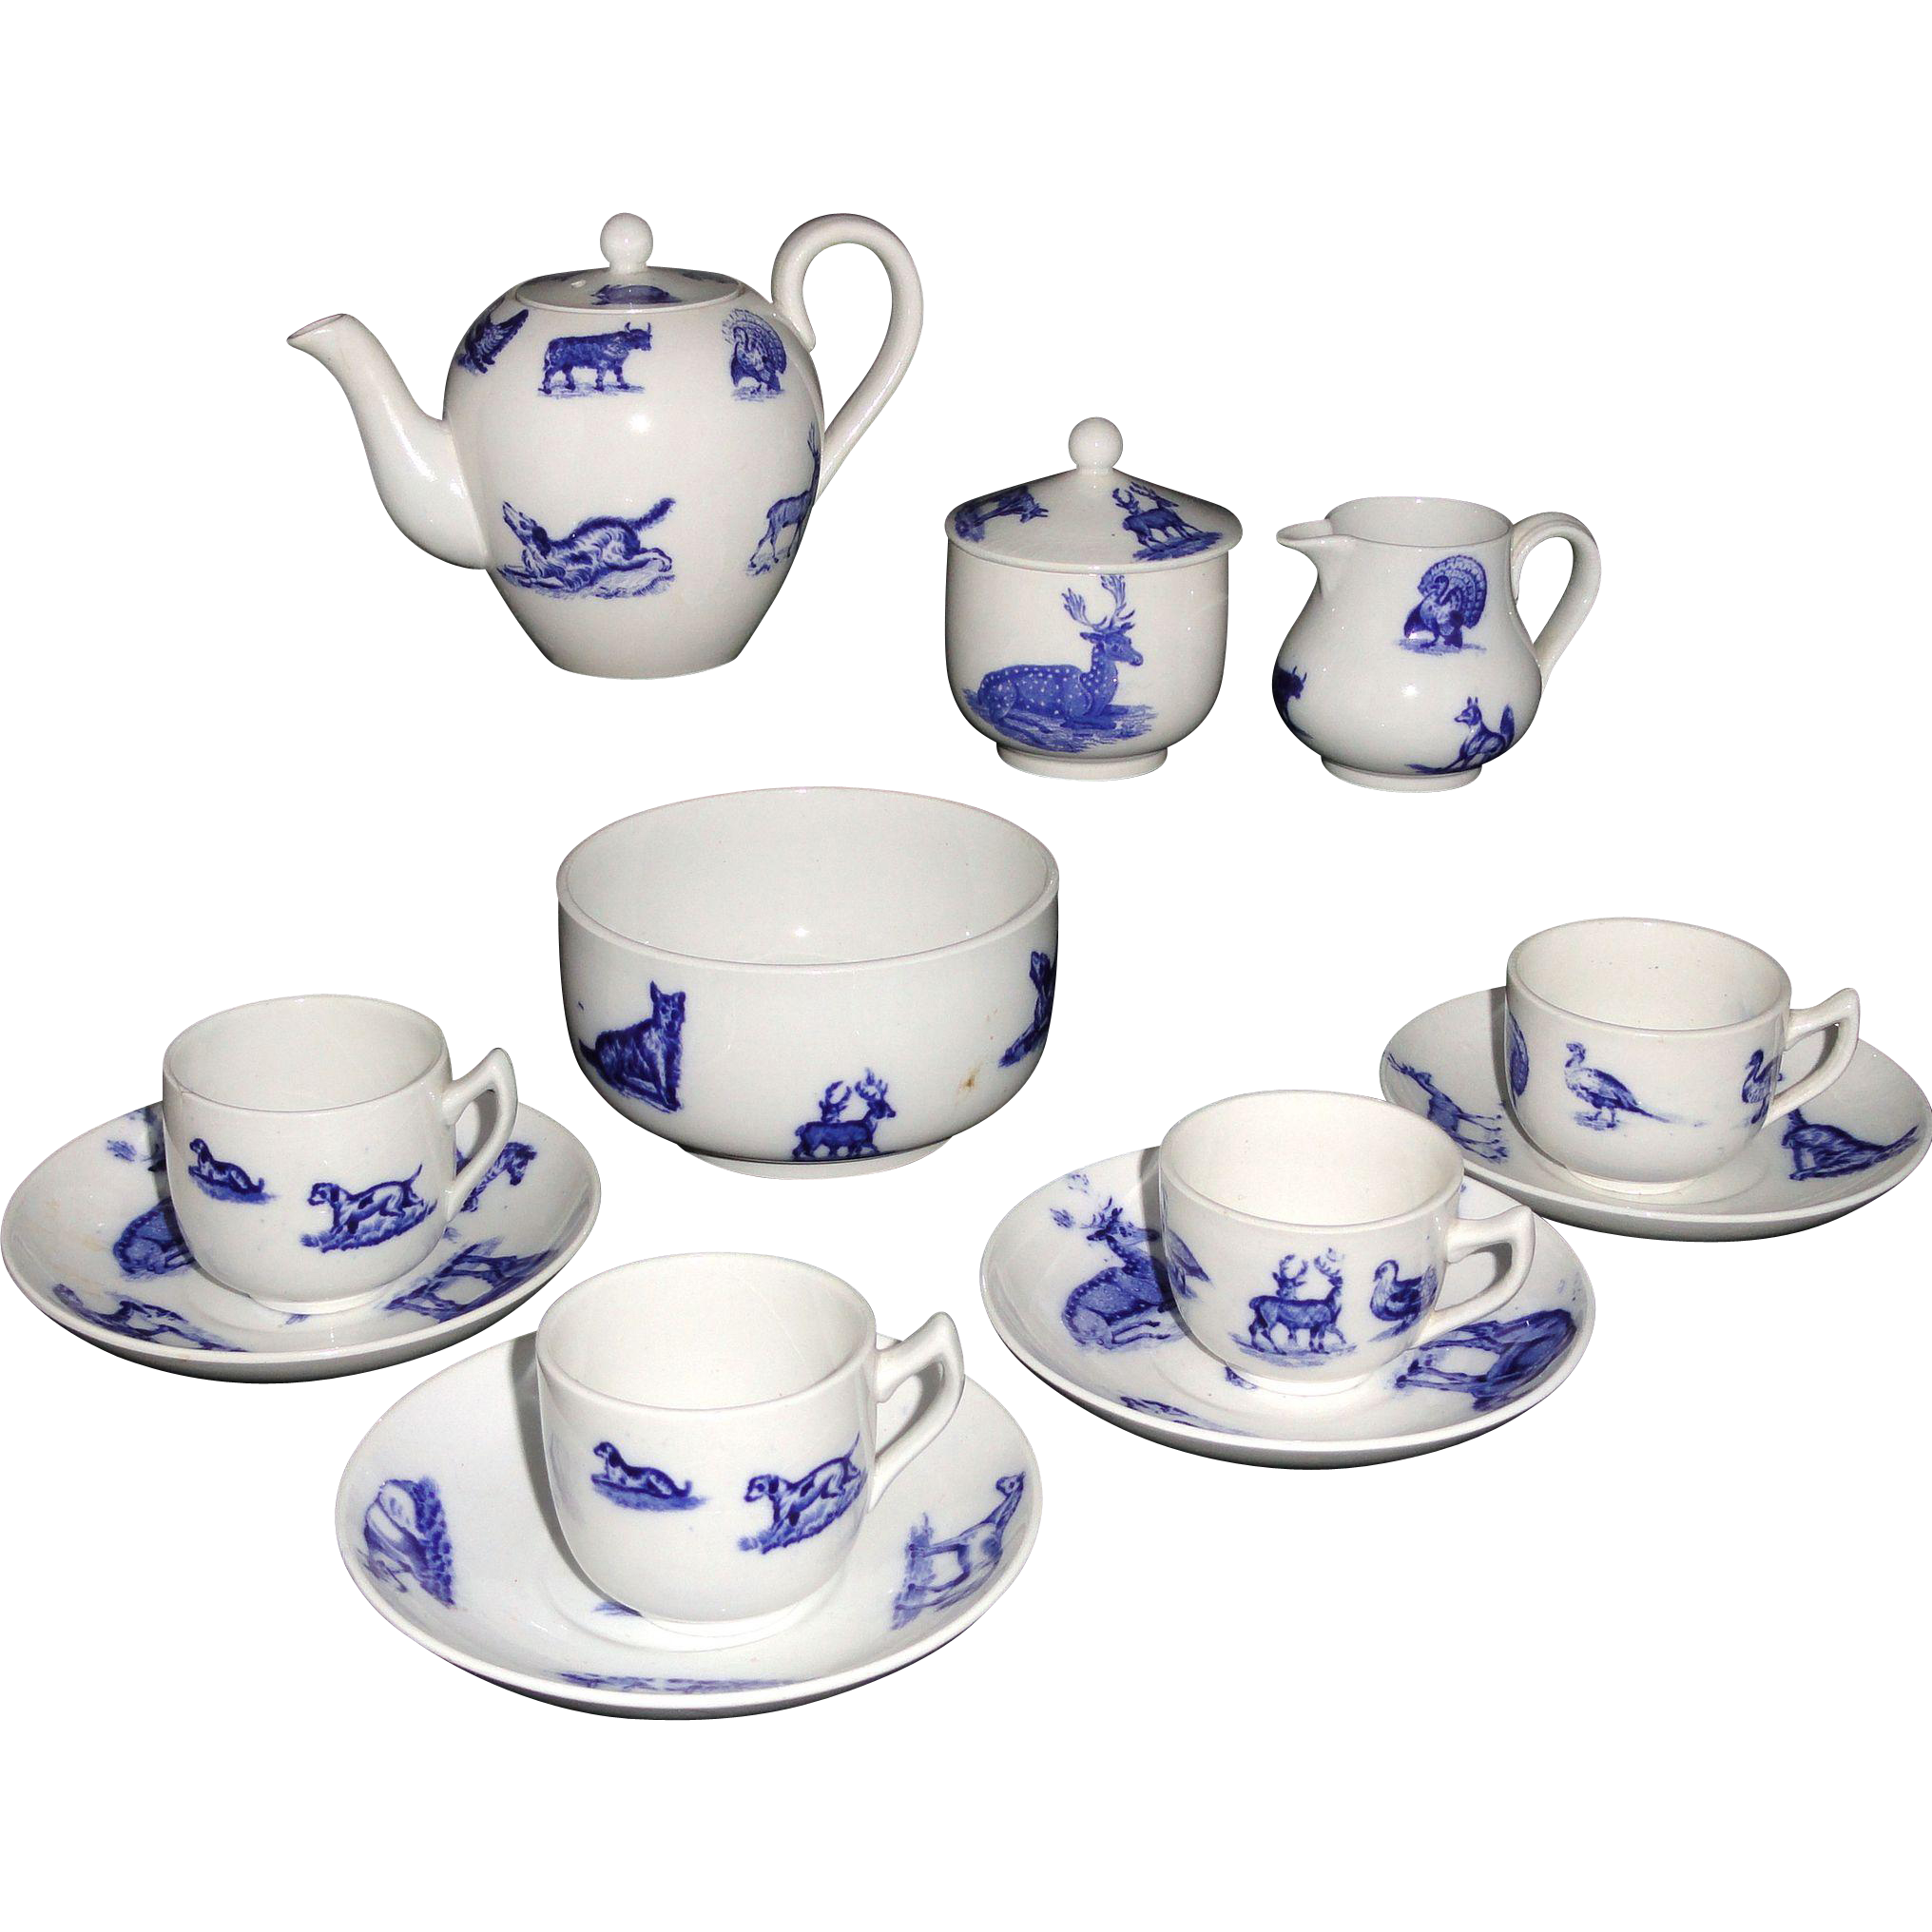 Childs Flow Blue Transferware Tea Set ANIMALS  Copeland late Spode Stoke-on-Trent England c1880